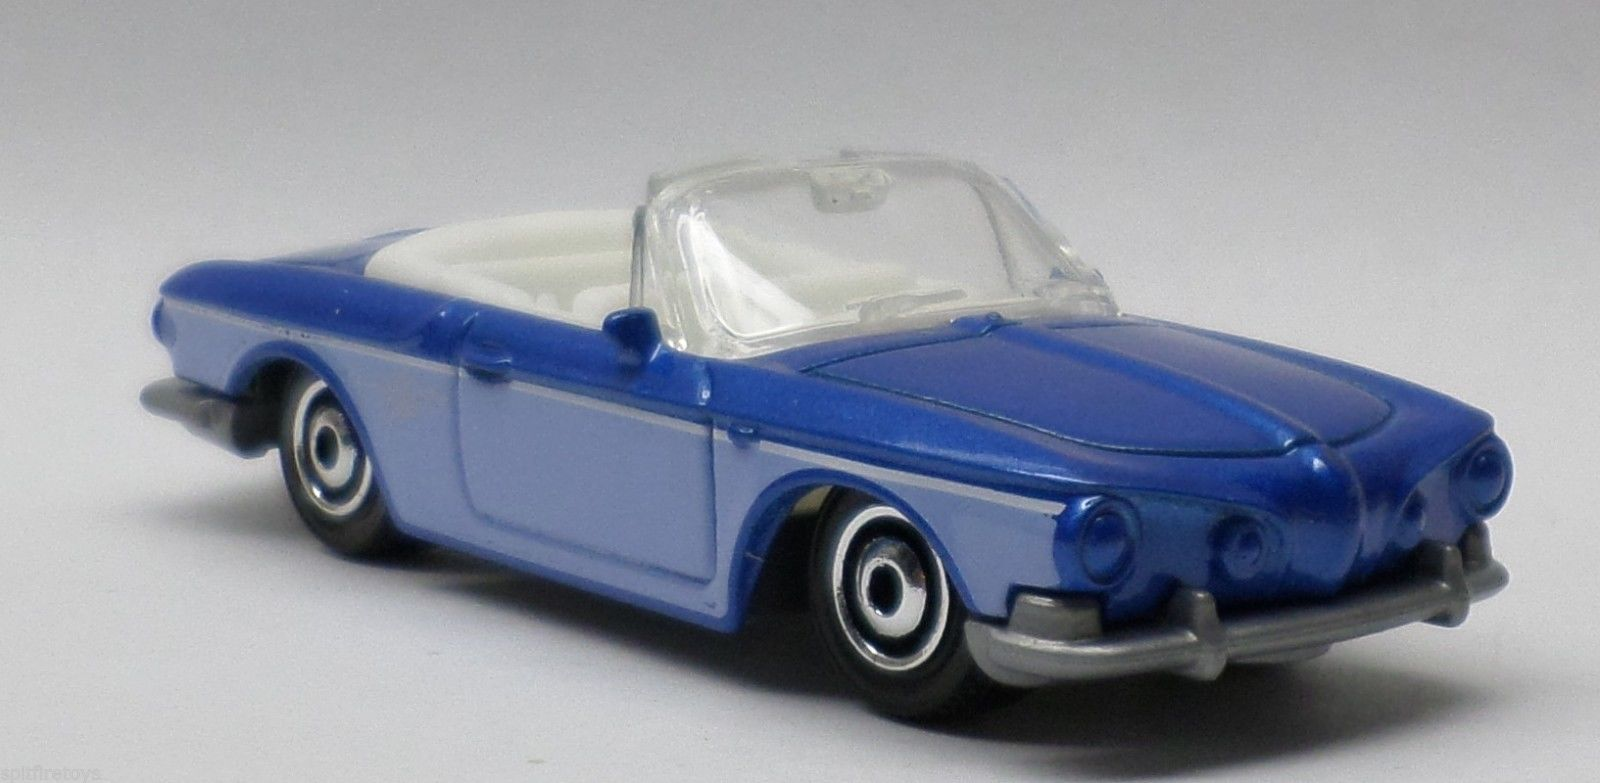 VW Type 34 Karmann Ghia Convertible